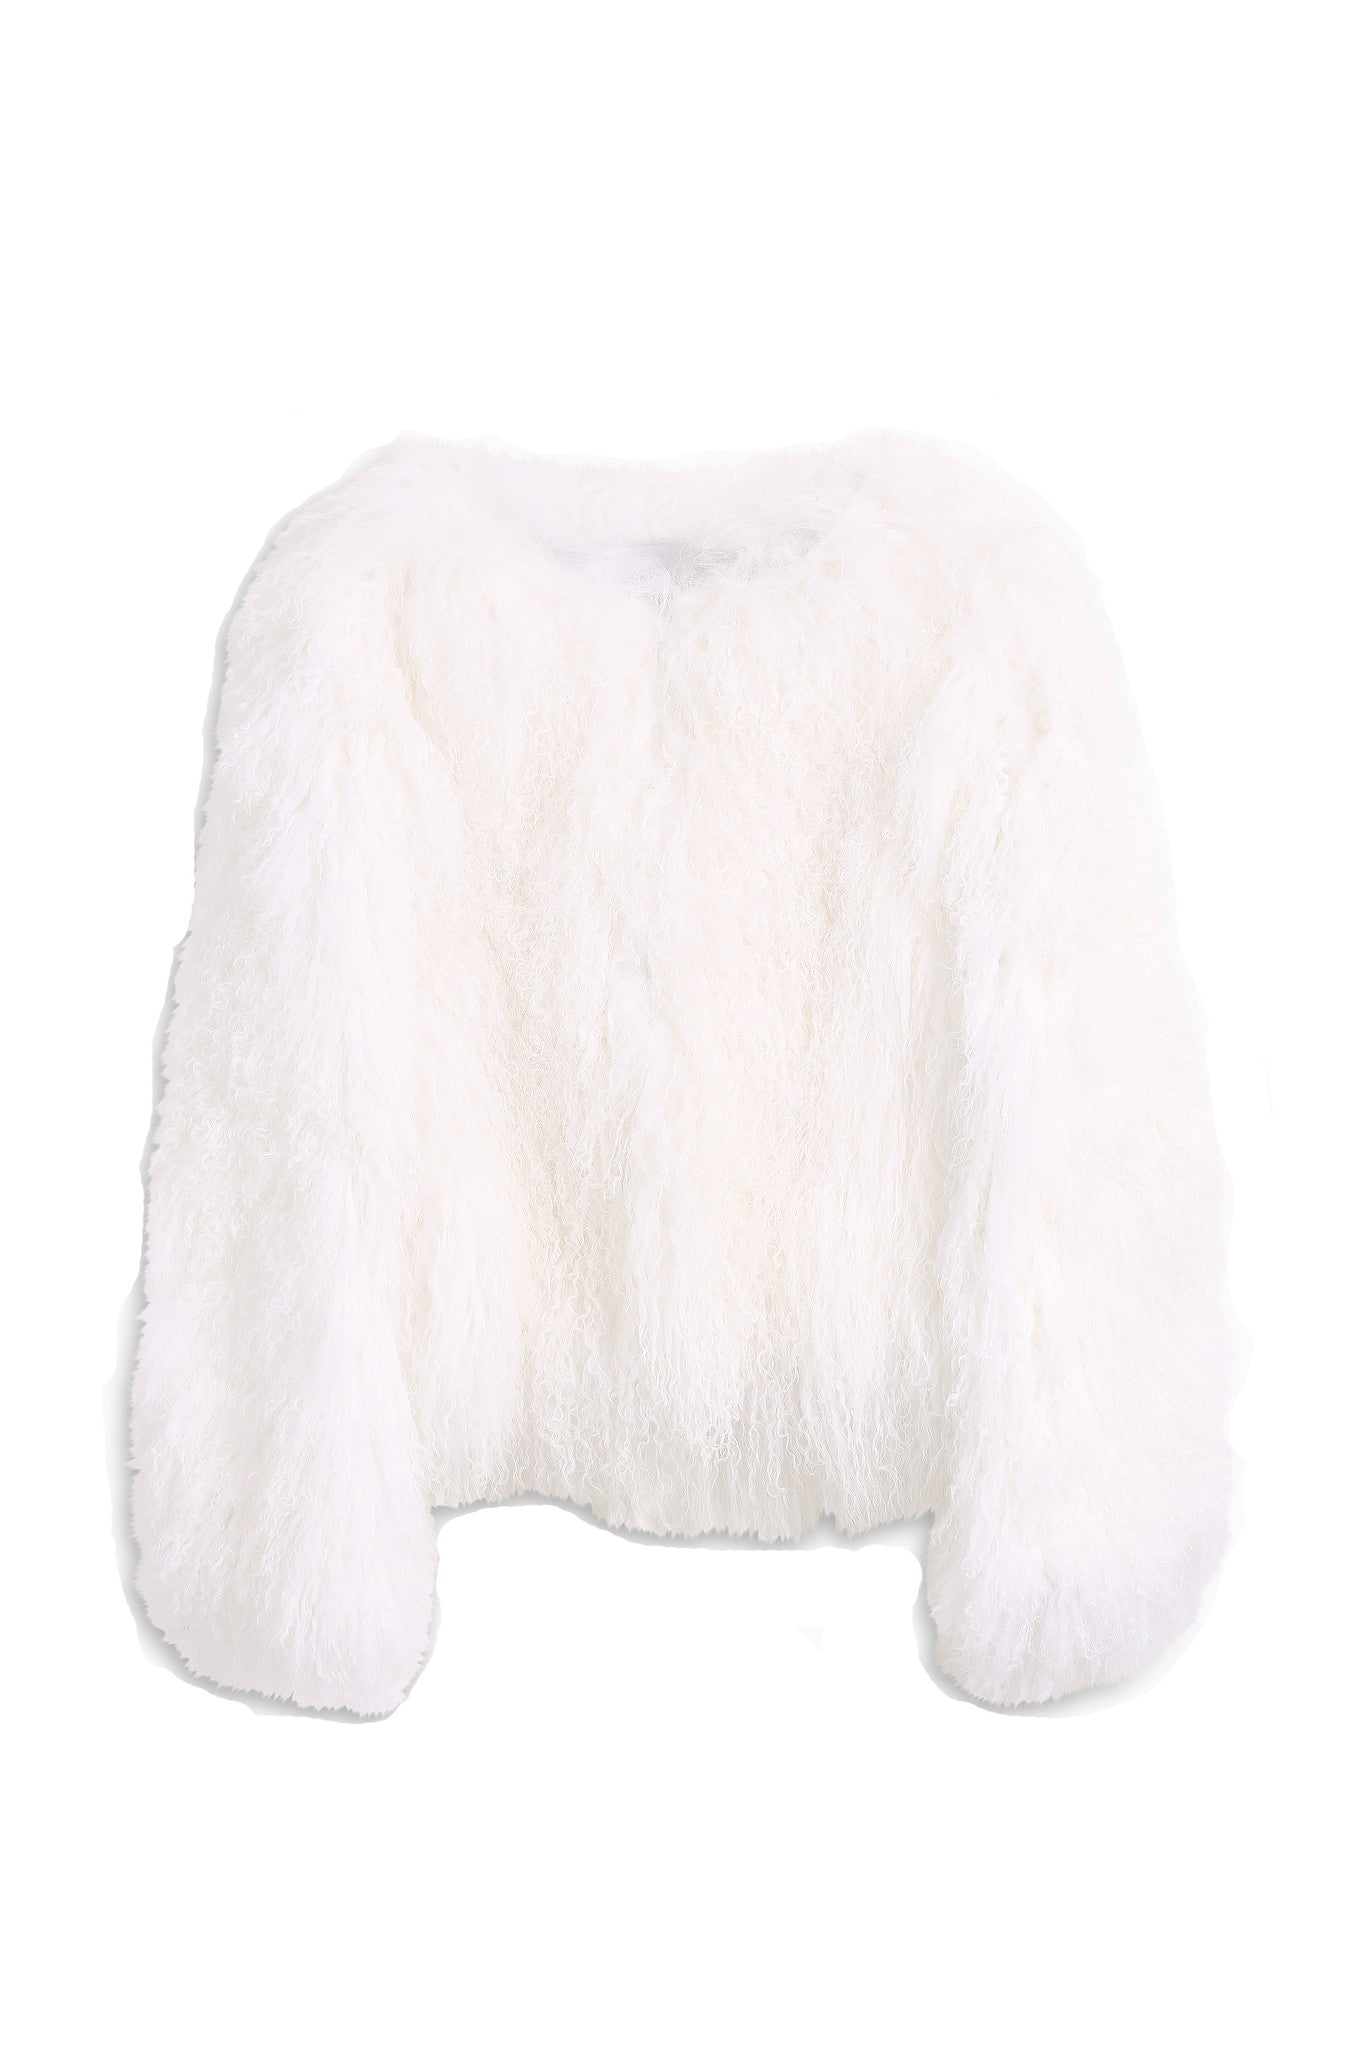 Mongolian Fur Jacket - Paul and Joe - Fur - TOPGEARNY